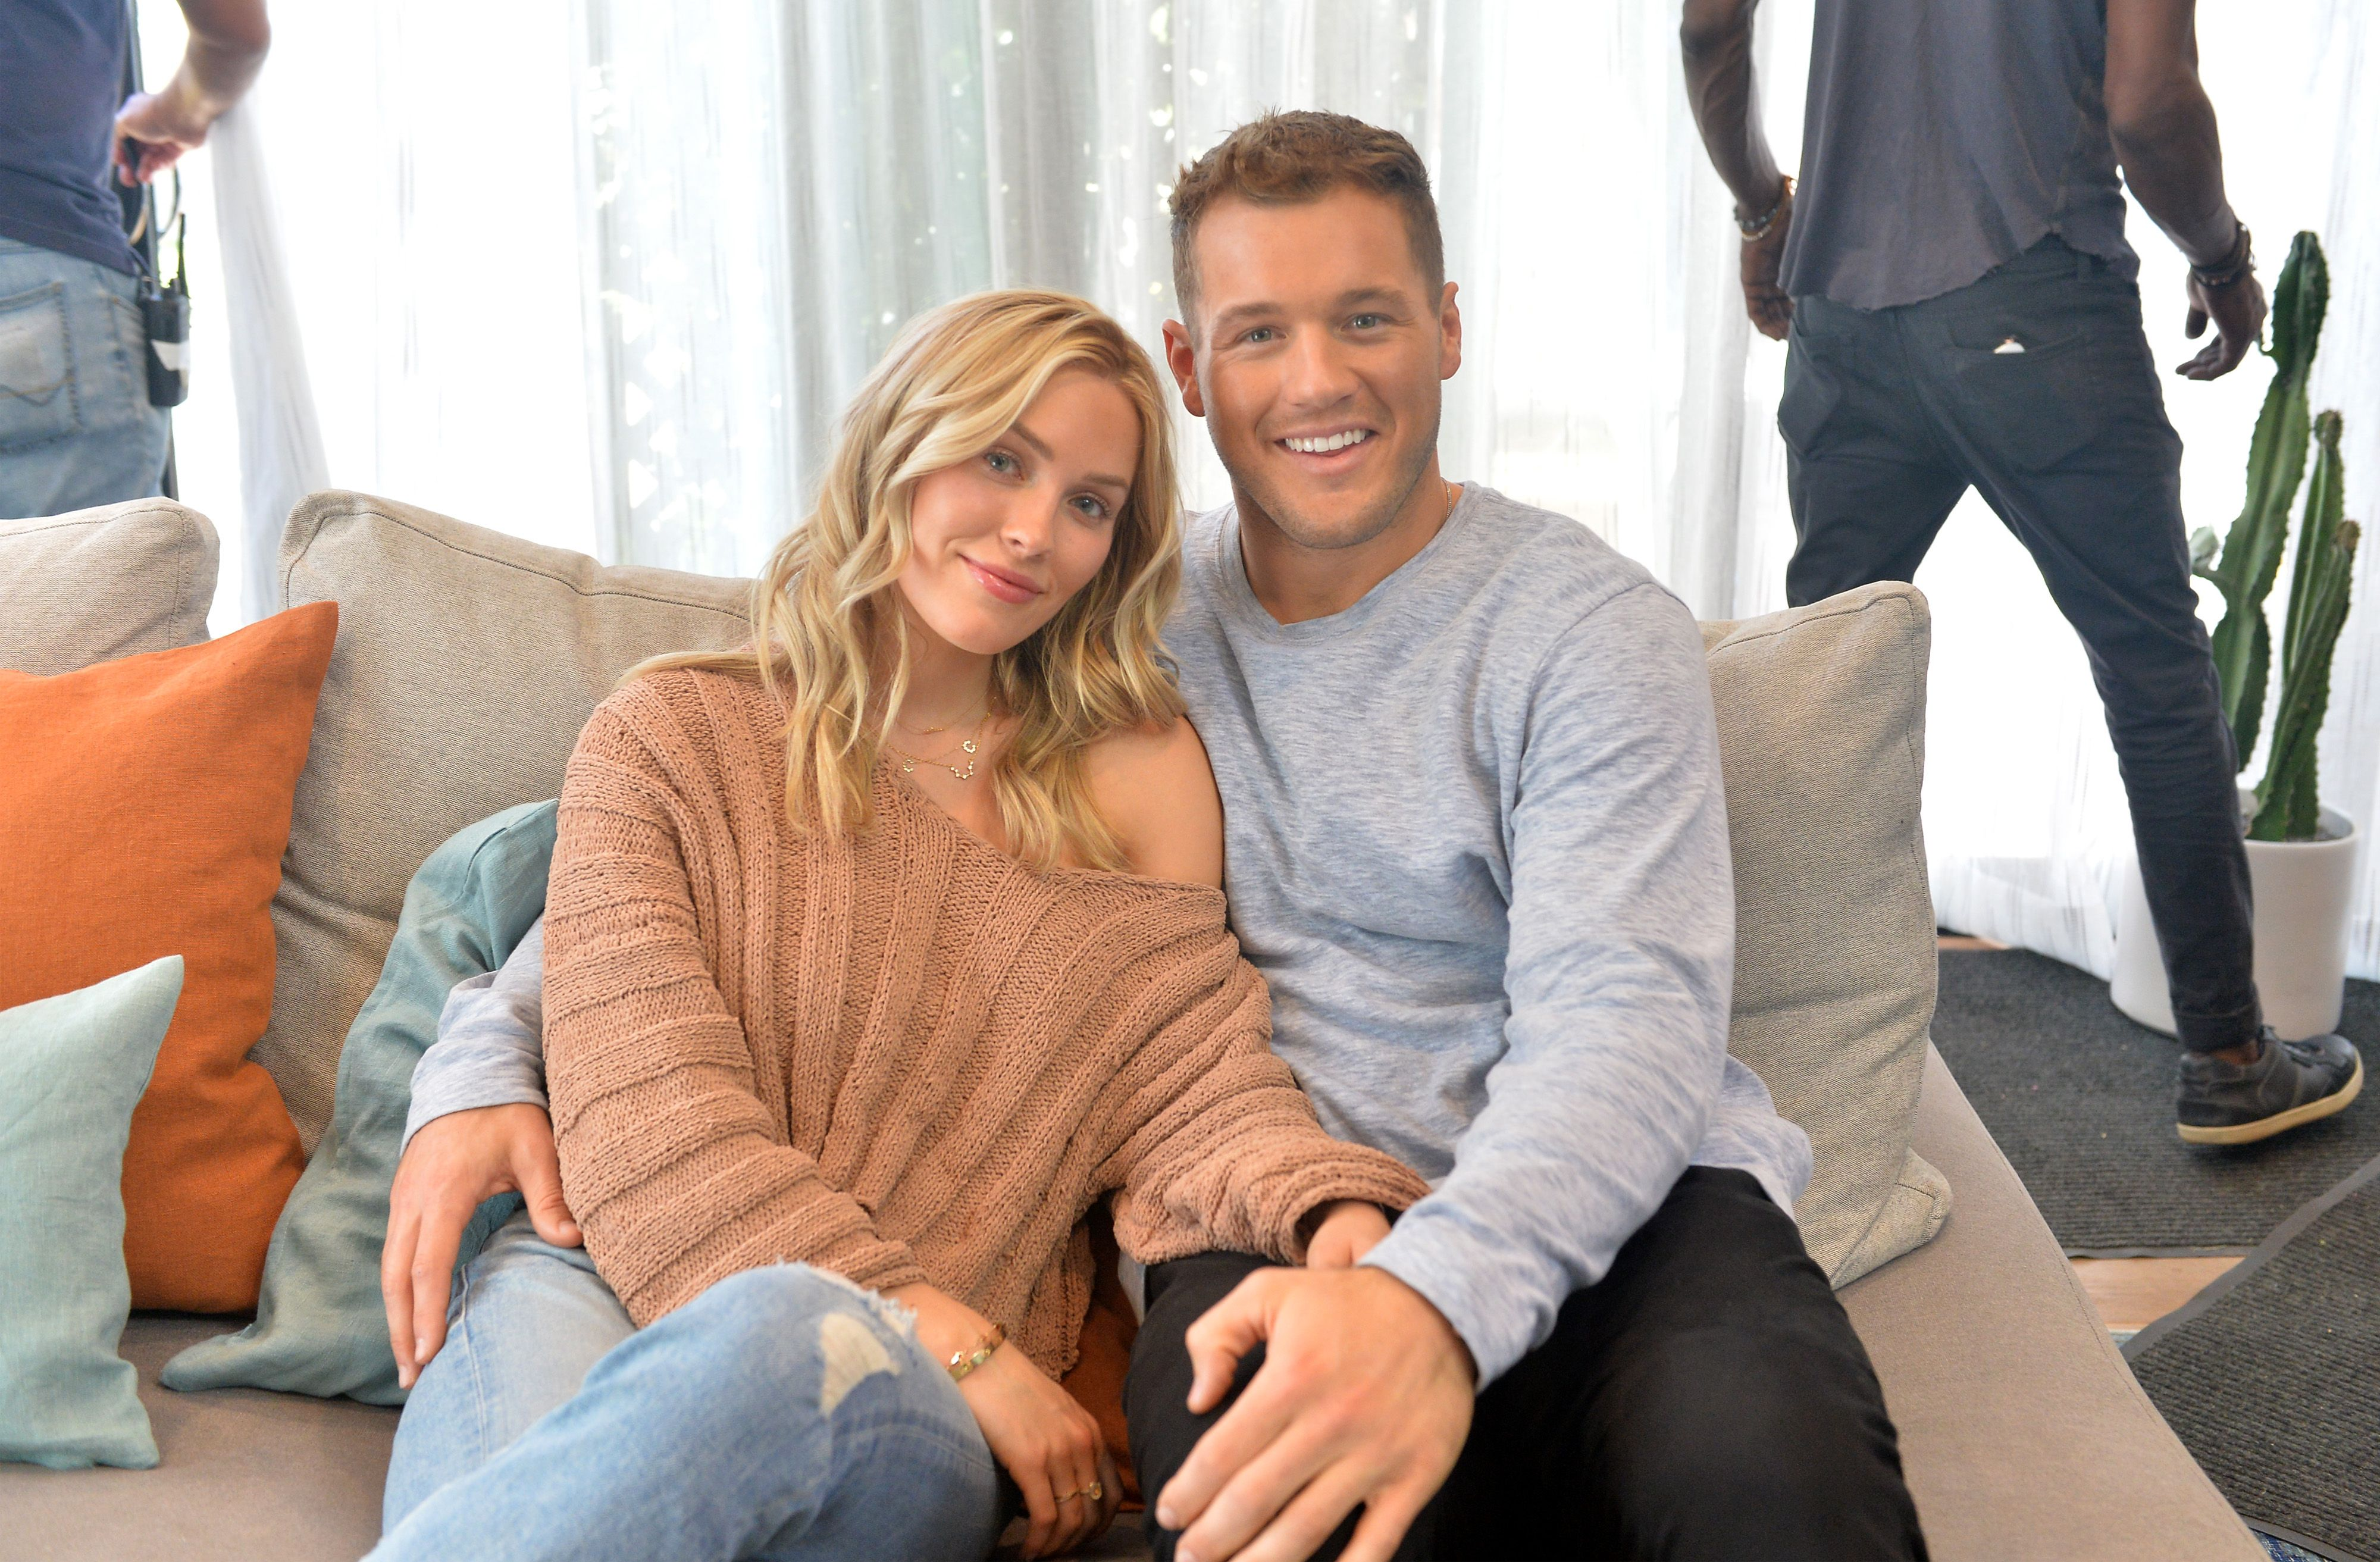 Cassie Randolph and Colton Underwood in an ad for Tubi on October 08, 2019 in Mar Vista, California. | Source: Getty Images